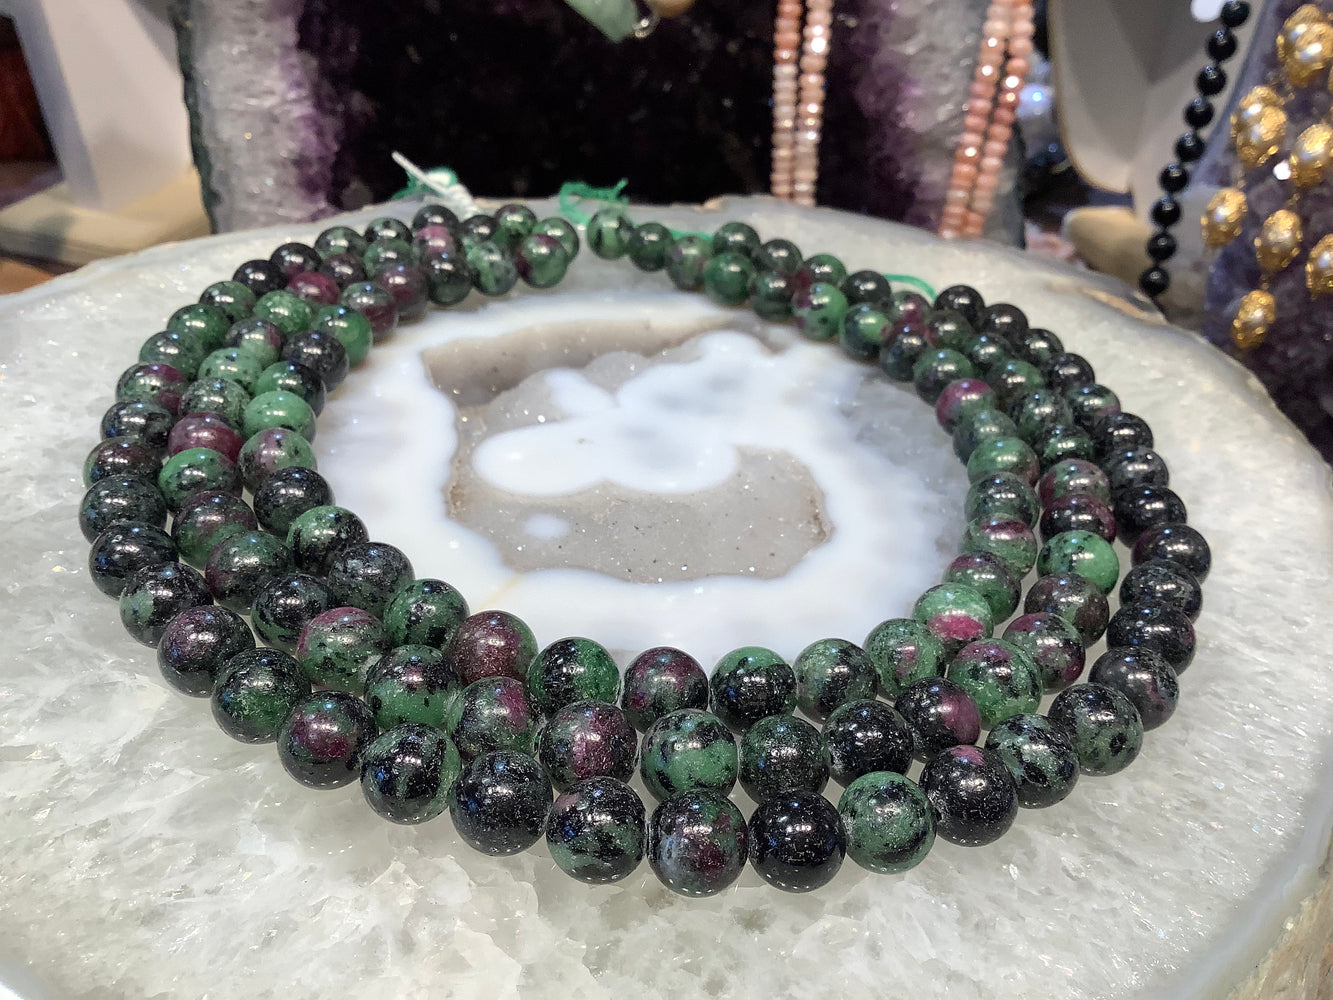 Ruby zoisite 10mm round gemstones